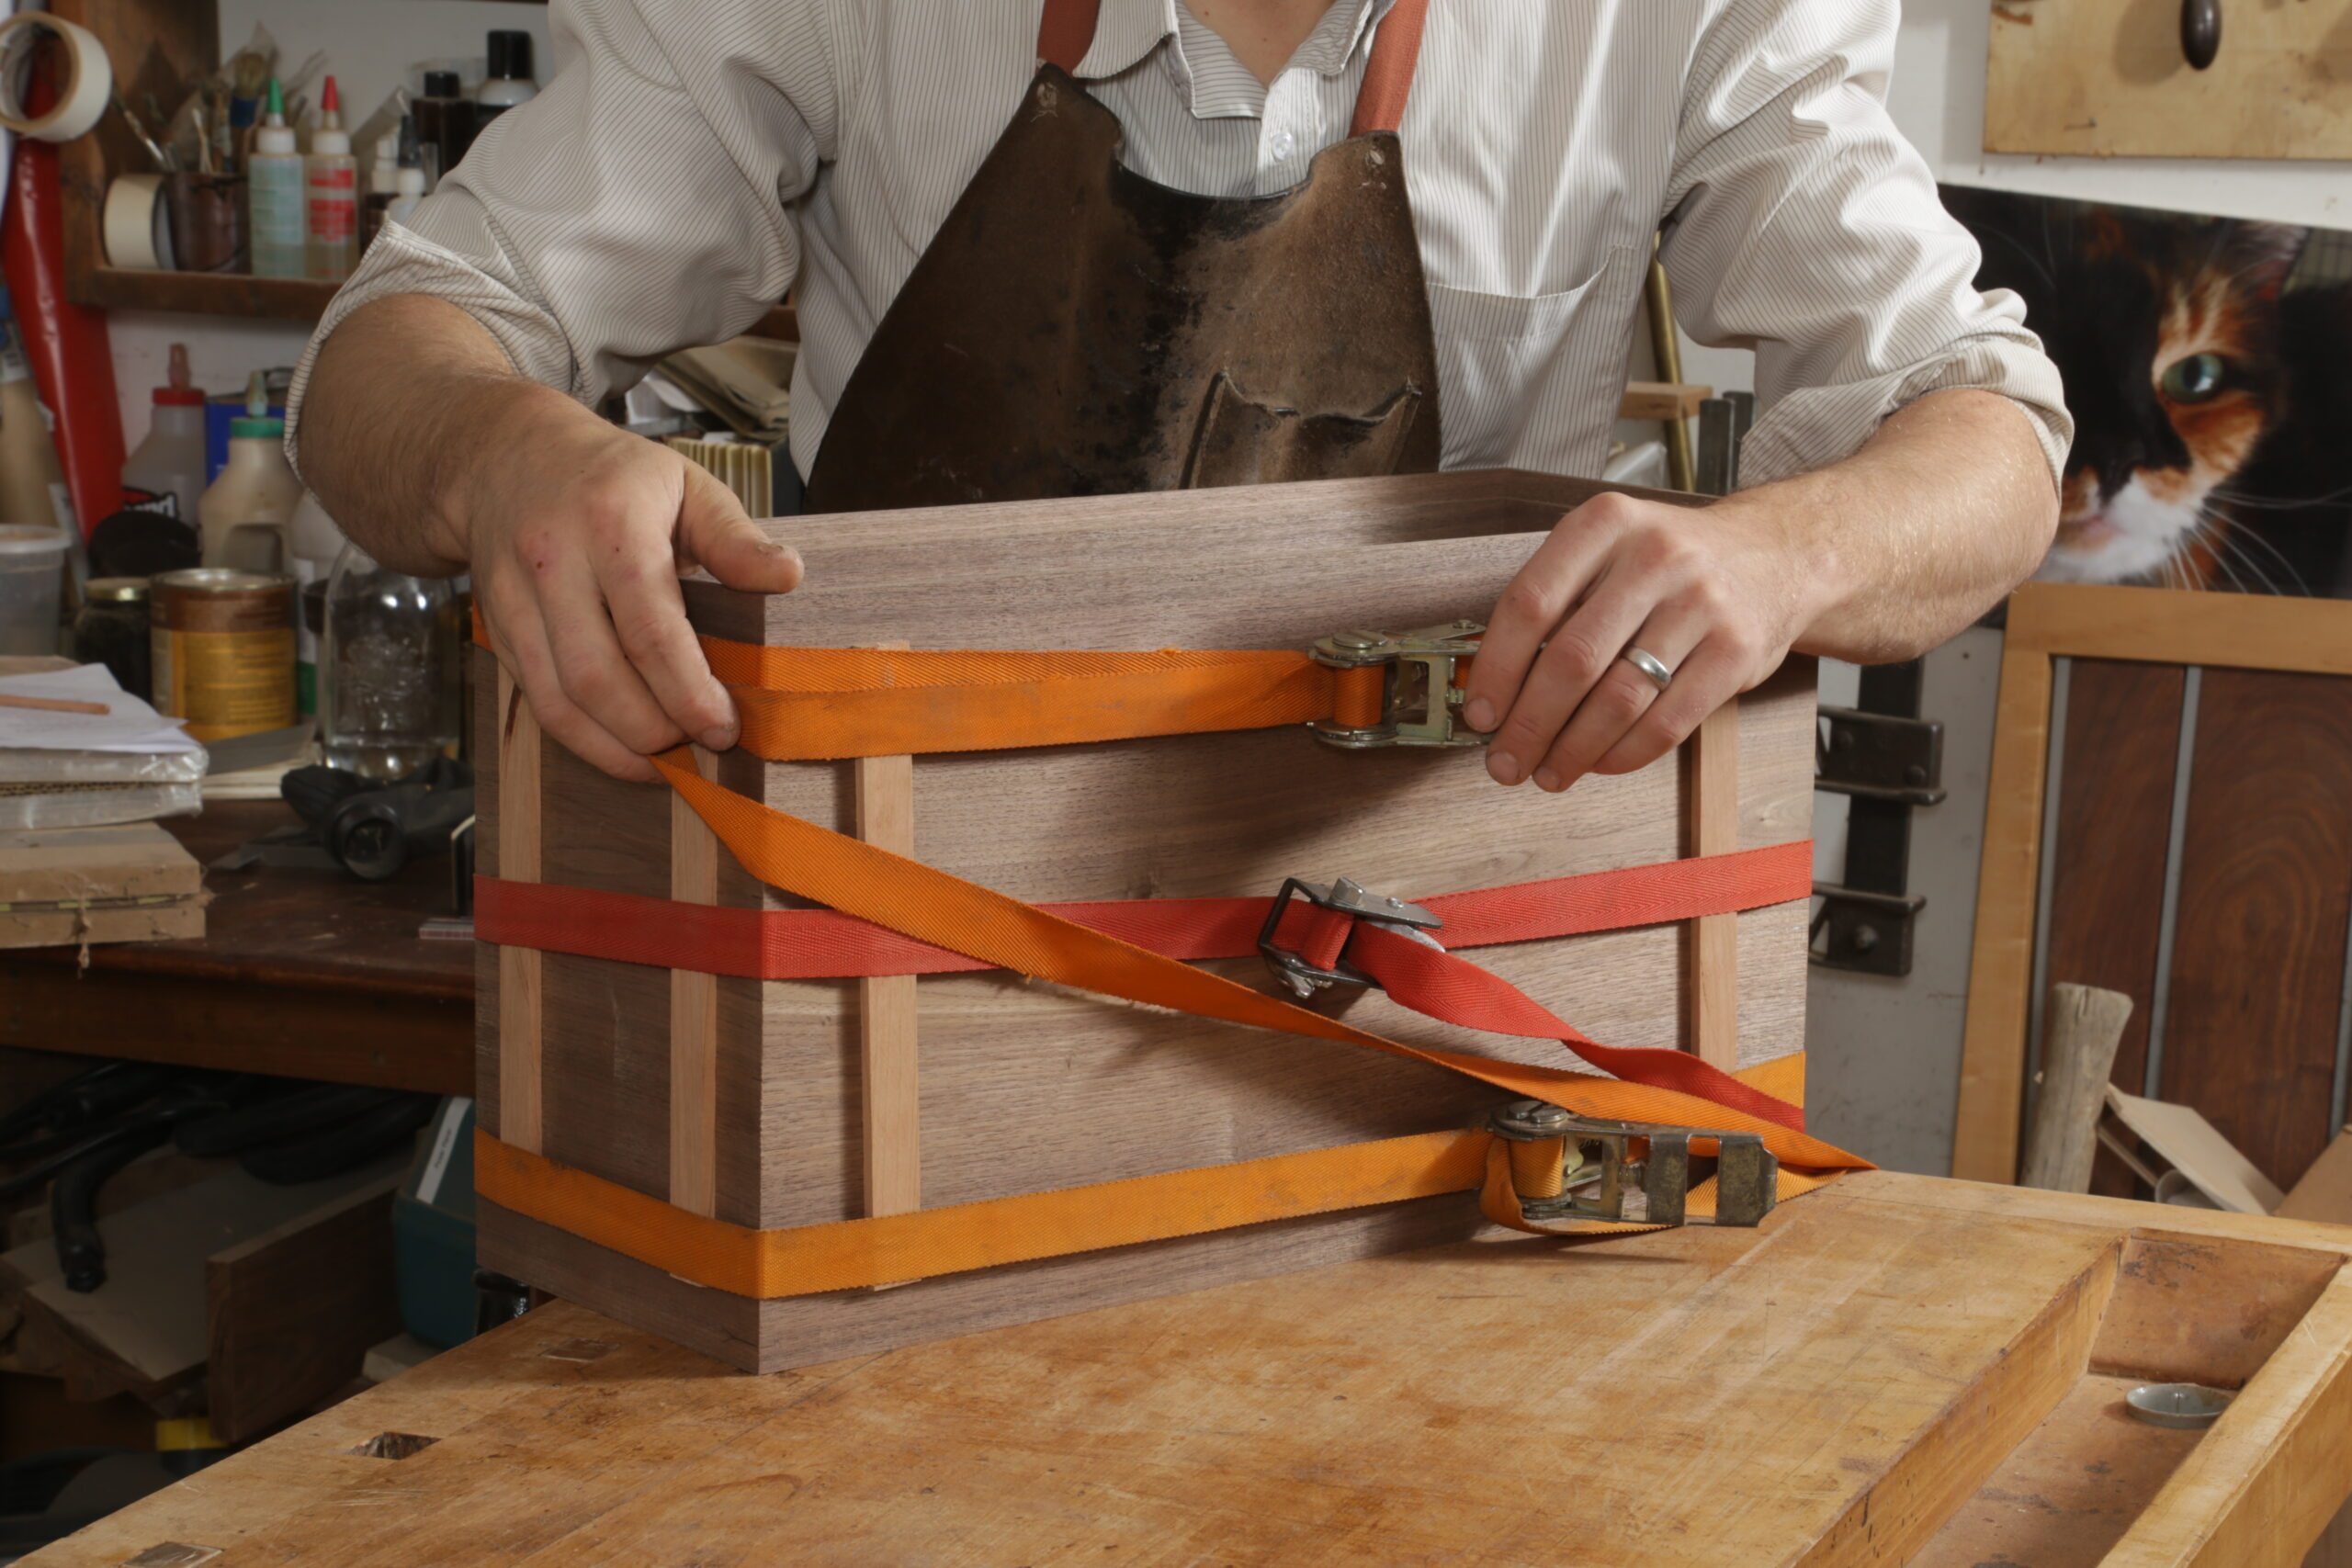 The box carcass is assembled, and the author is clamping it up. He is using two orange ratchet clamps and one red one to apply clamping pressure. At each of the box's corners are two strips of wood between the box and the straps.